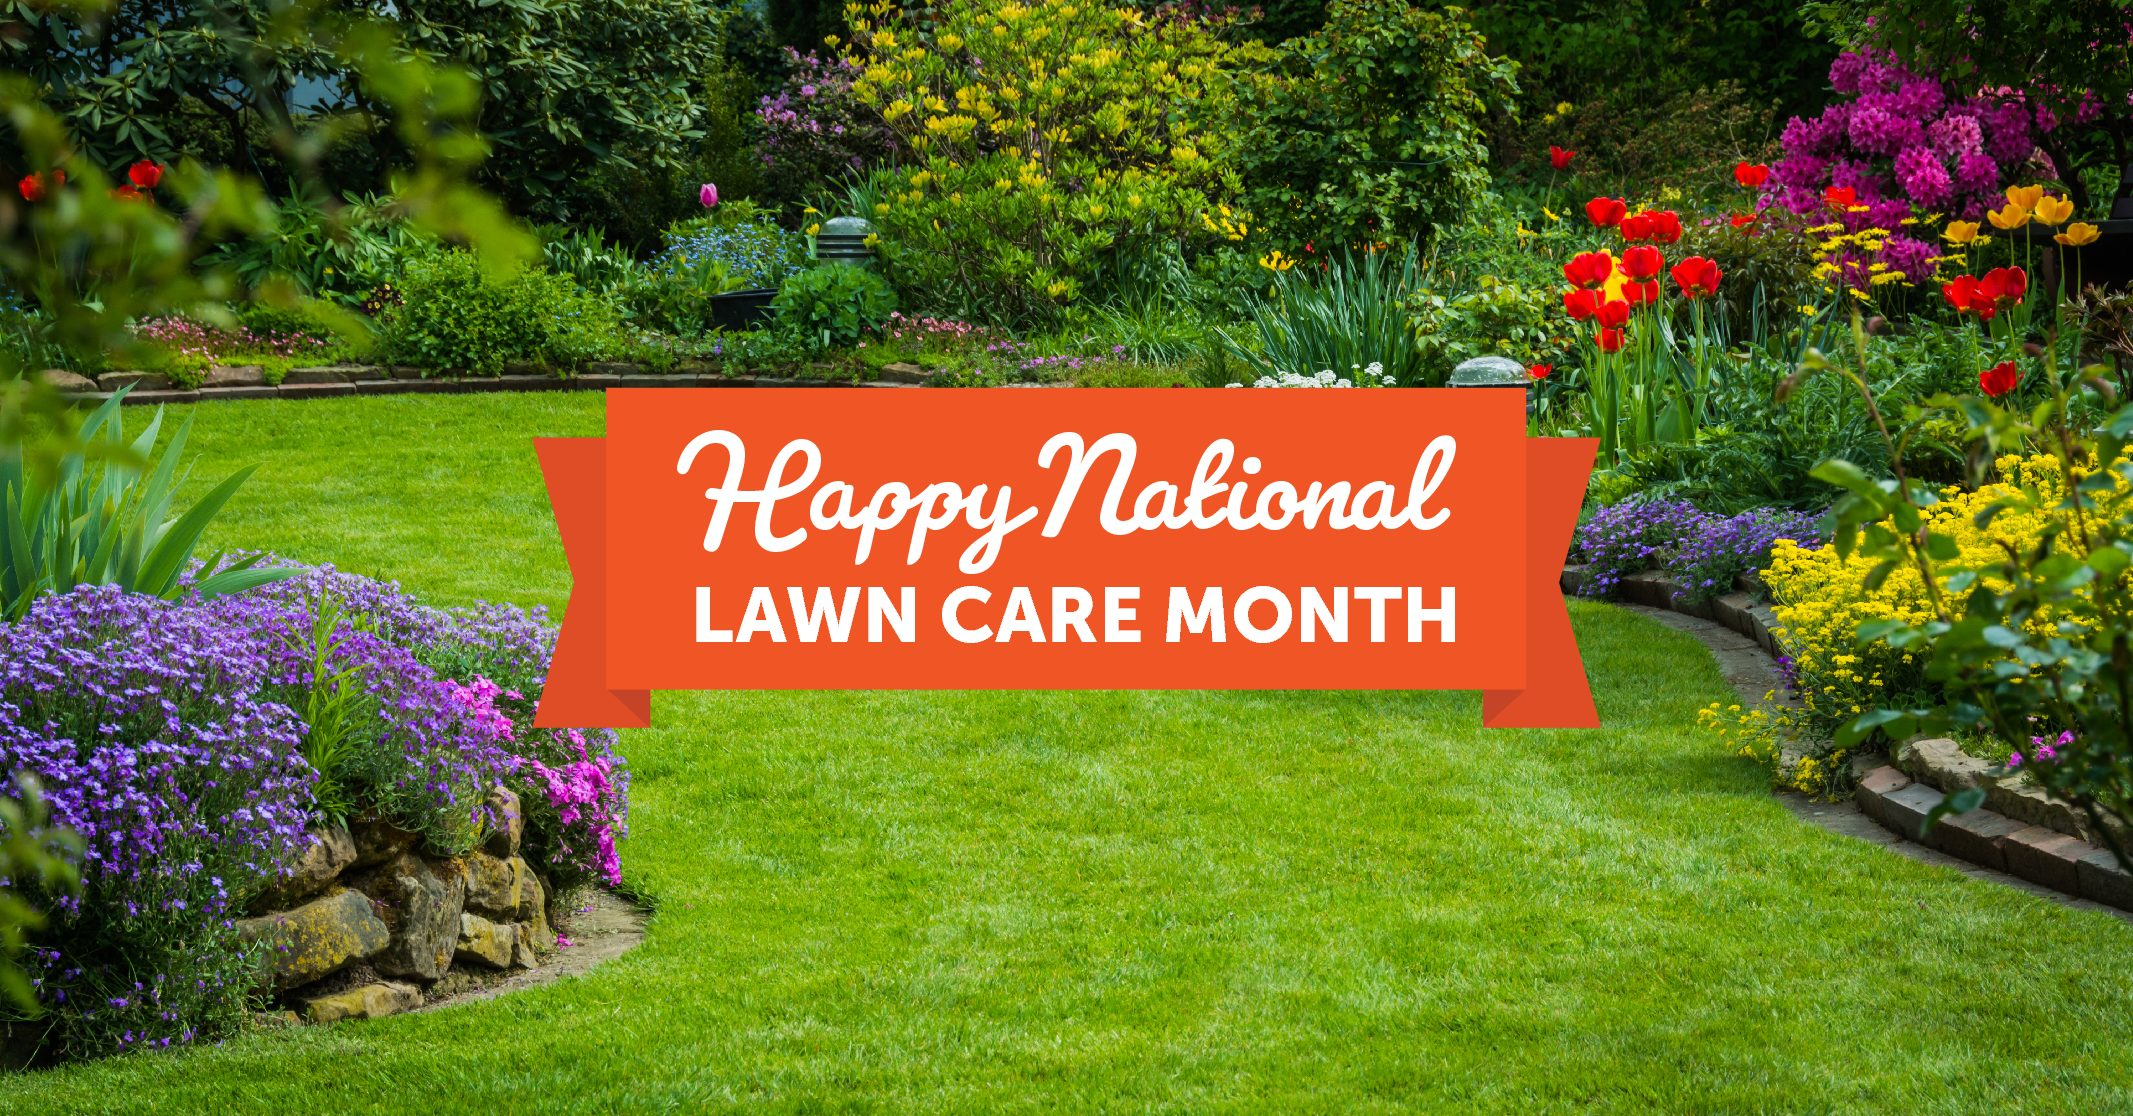 Happy National Lawn Care Month to Central Indiana HomeownersNo ratings yet.